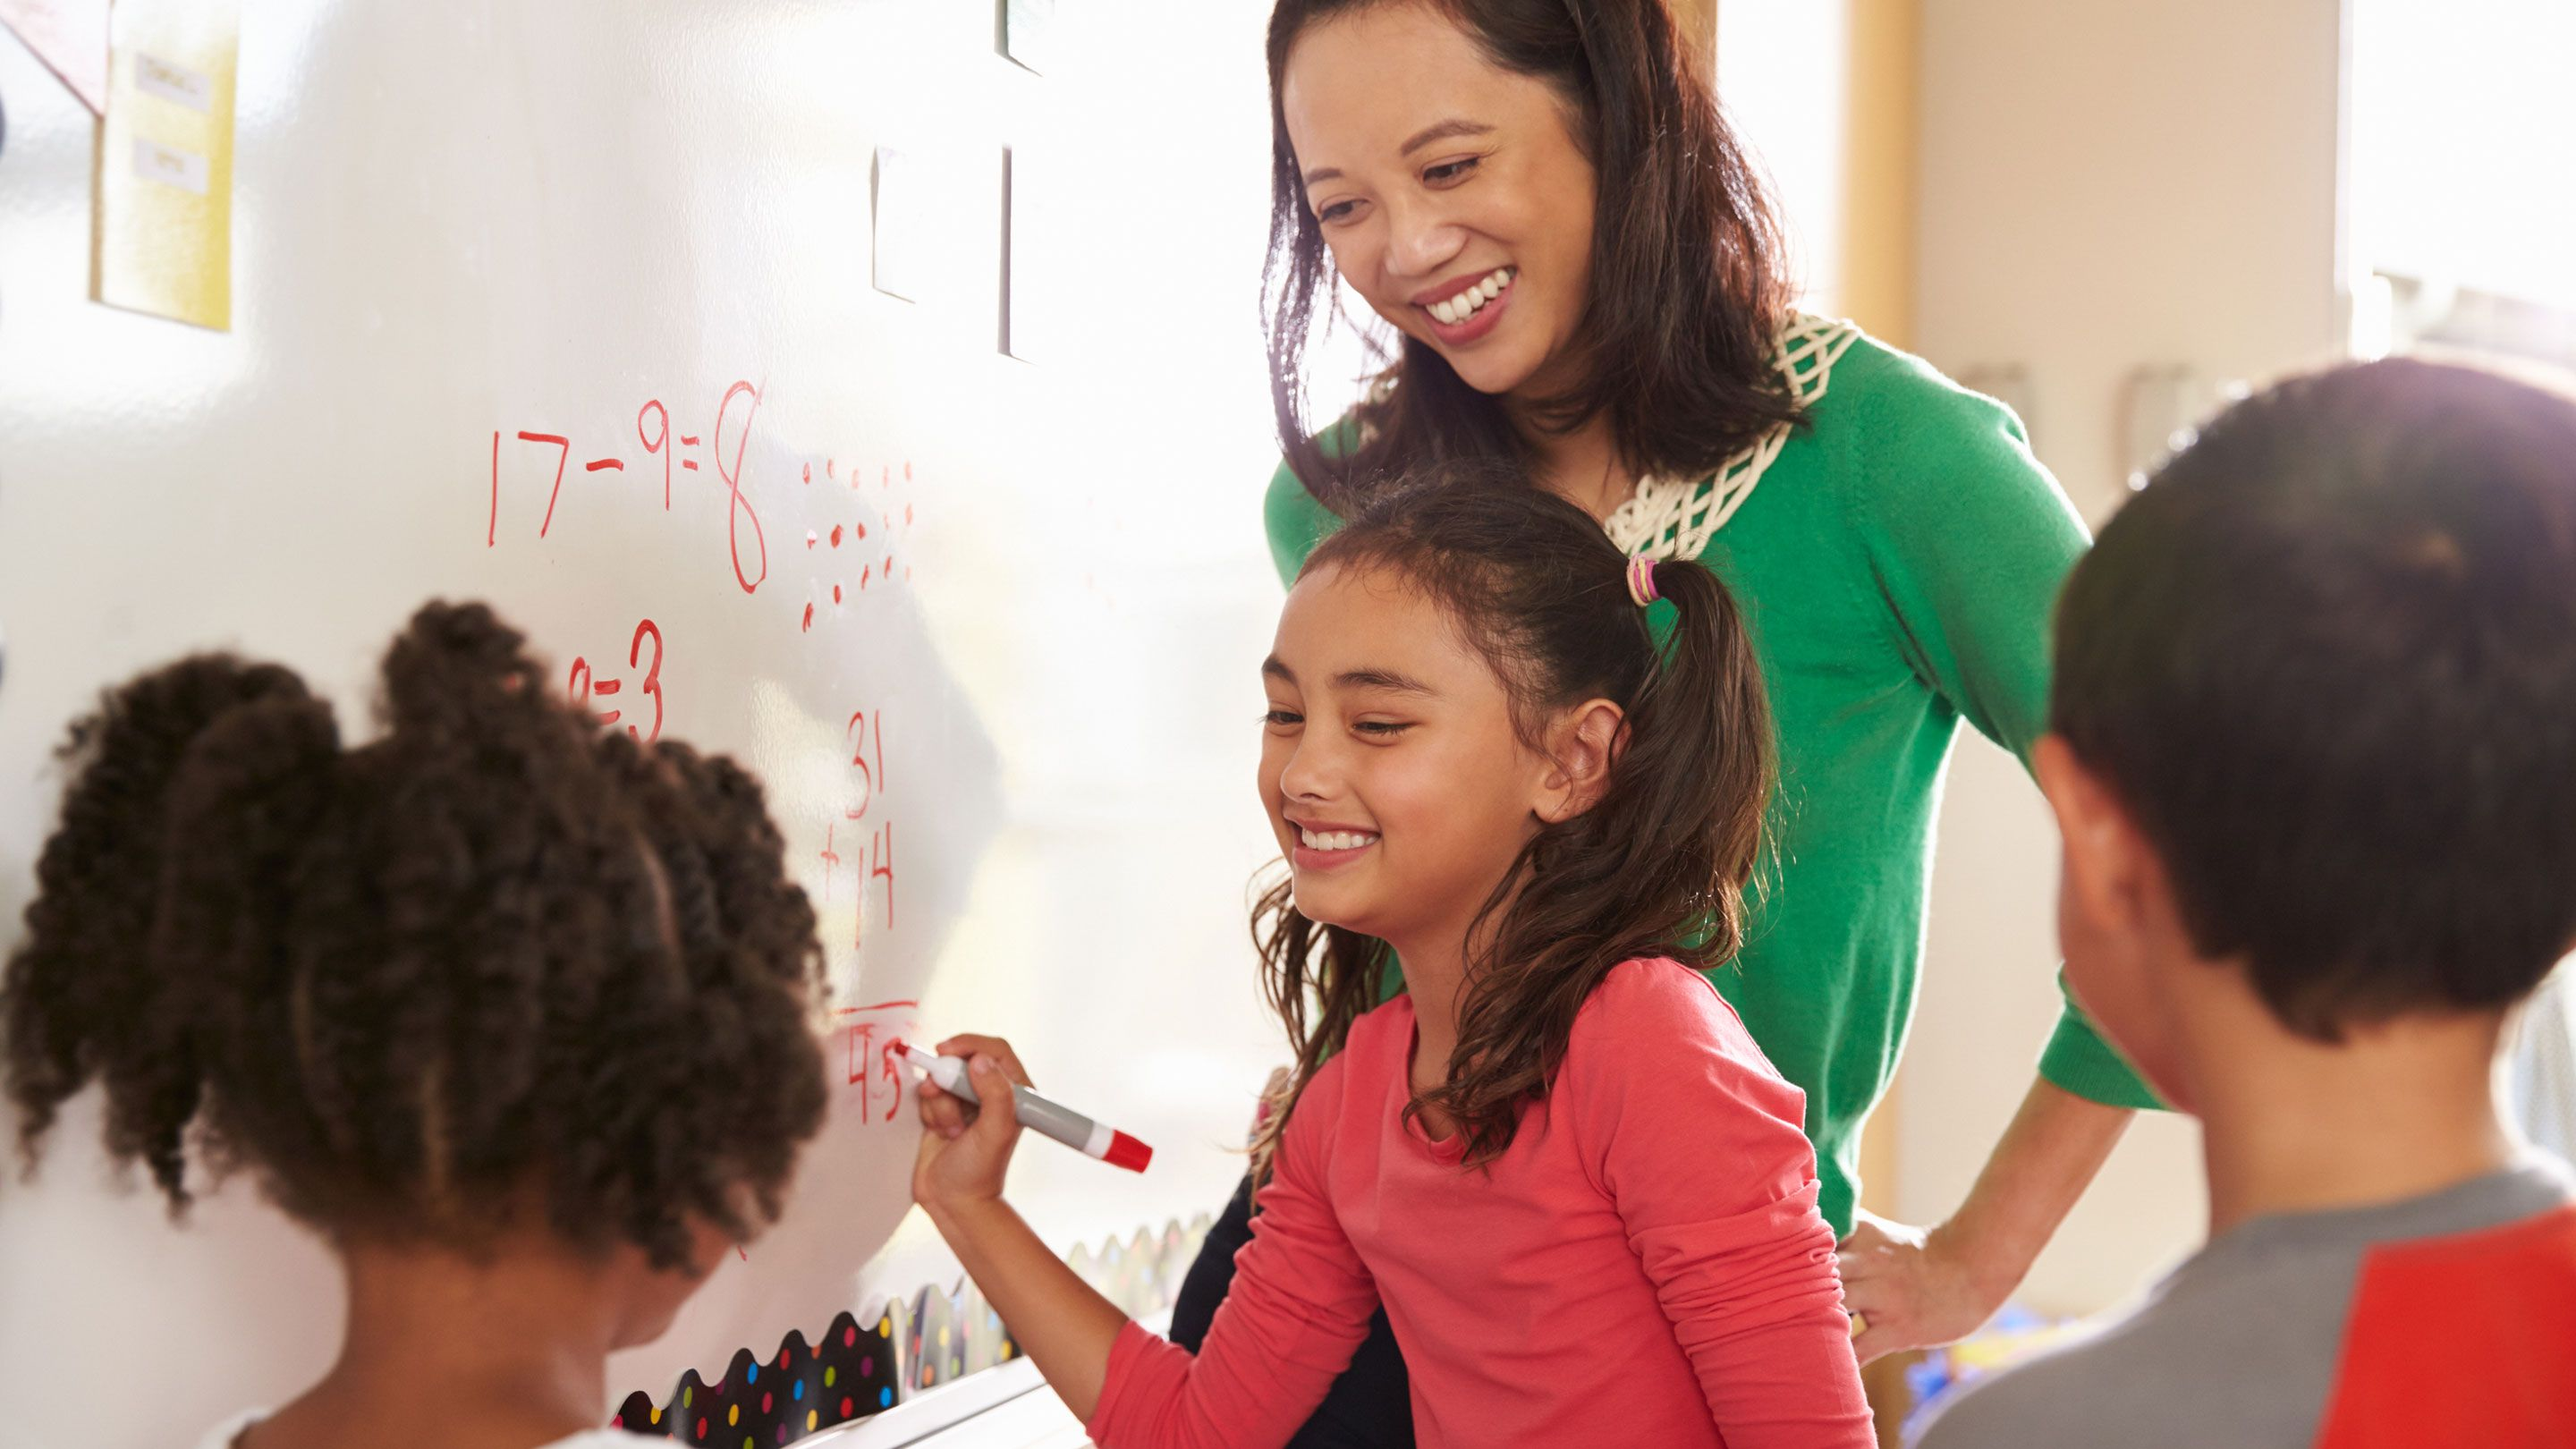 A group of young students work on a math problem on a whiteboard as the teacher watches.